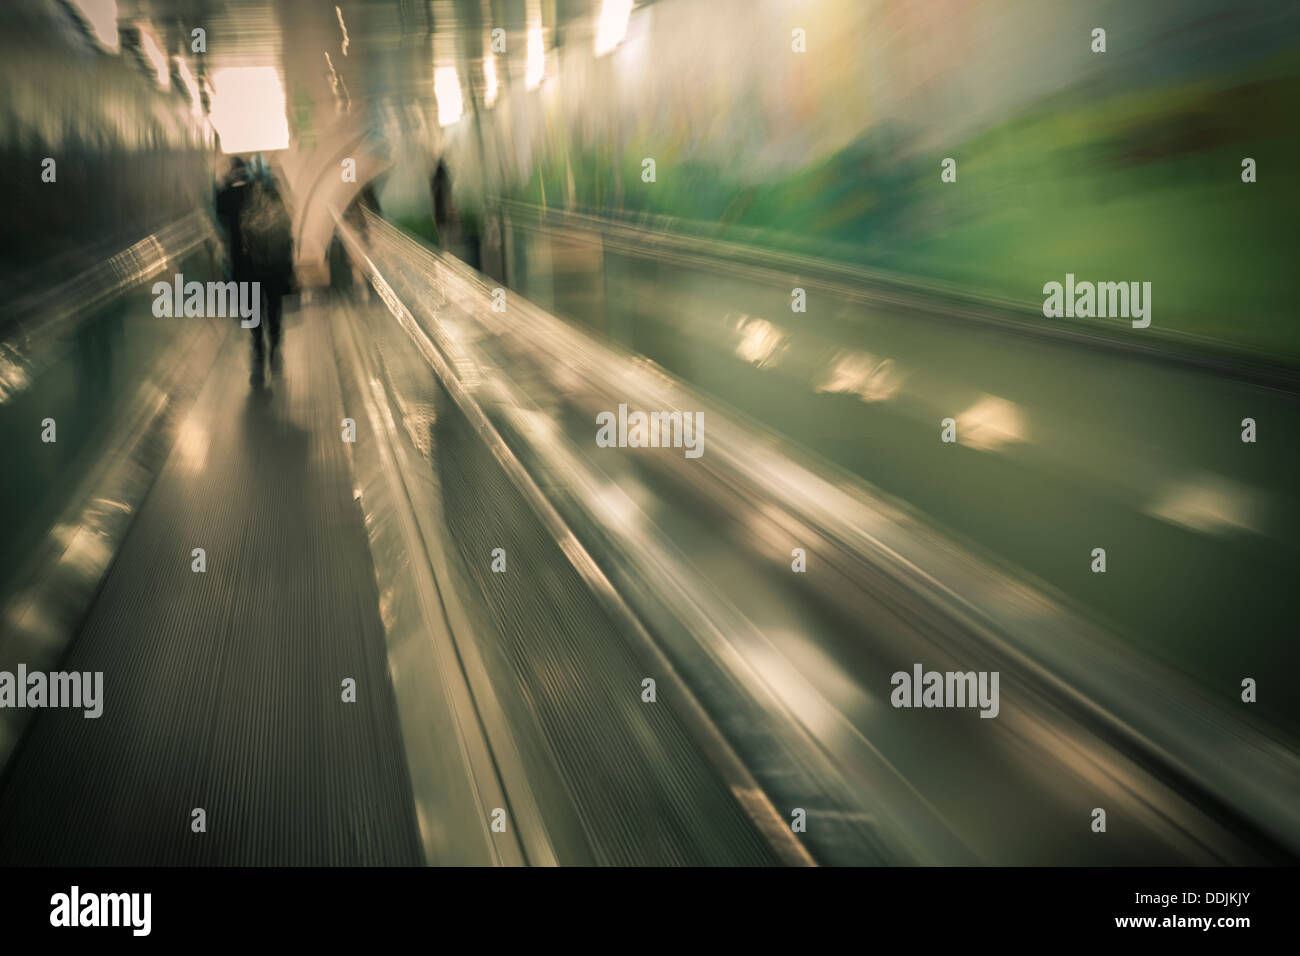 People on moving walkway to underground car park in Sydney, Australia. - Stock Image